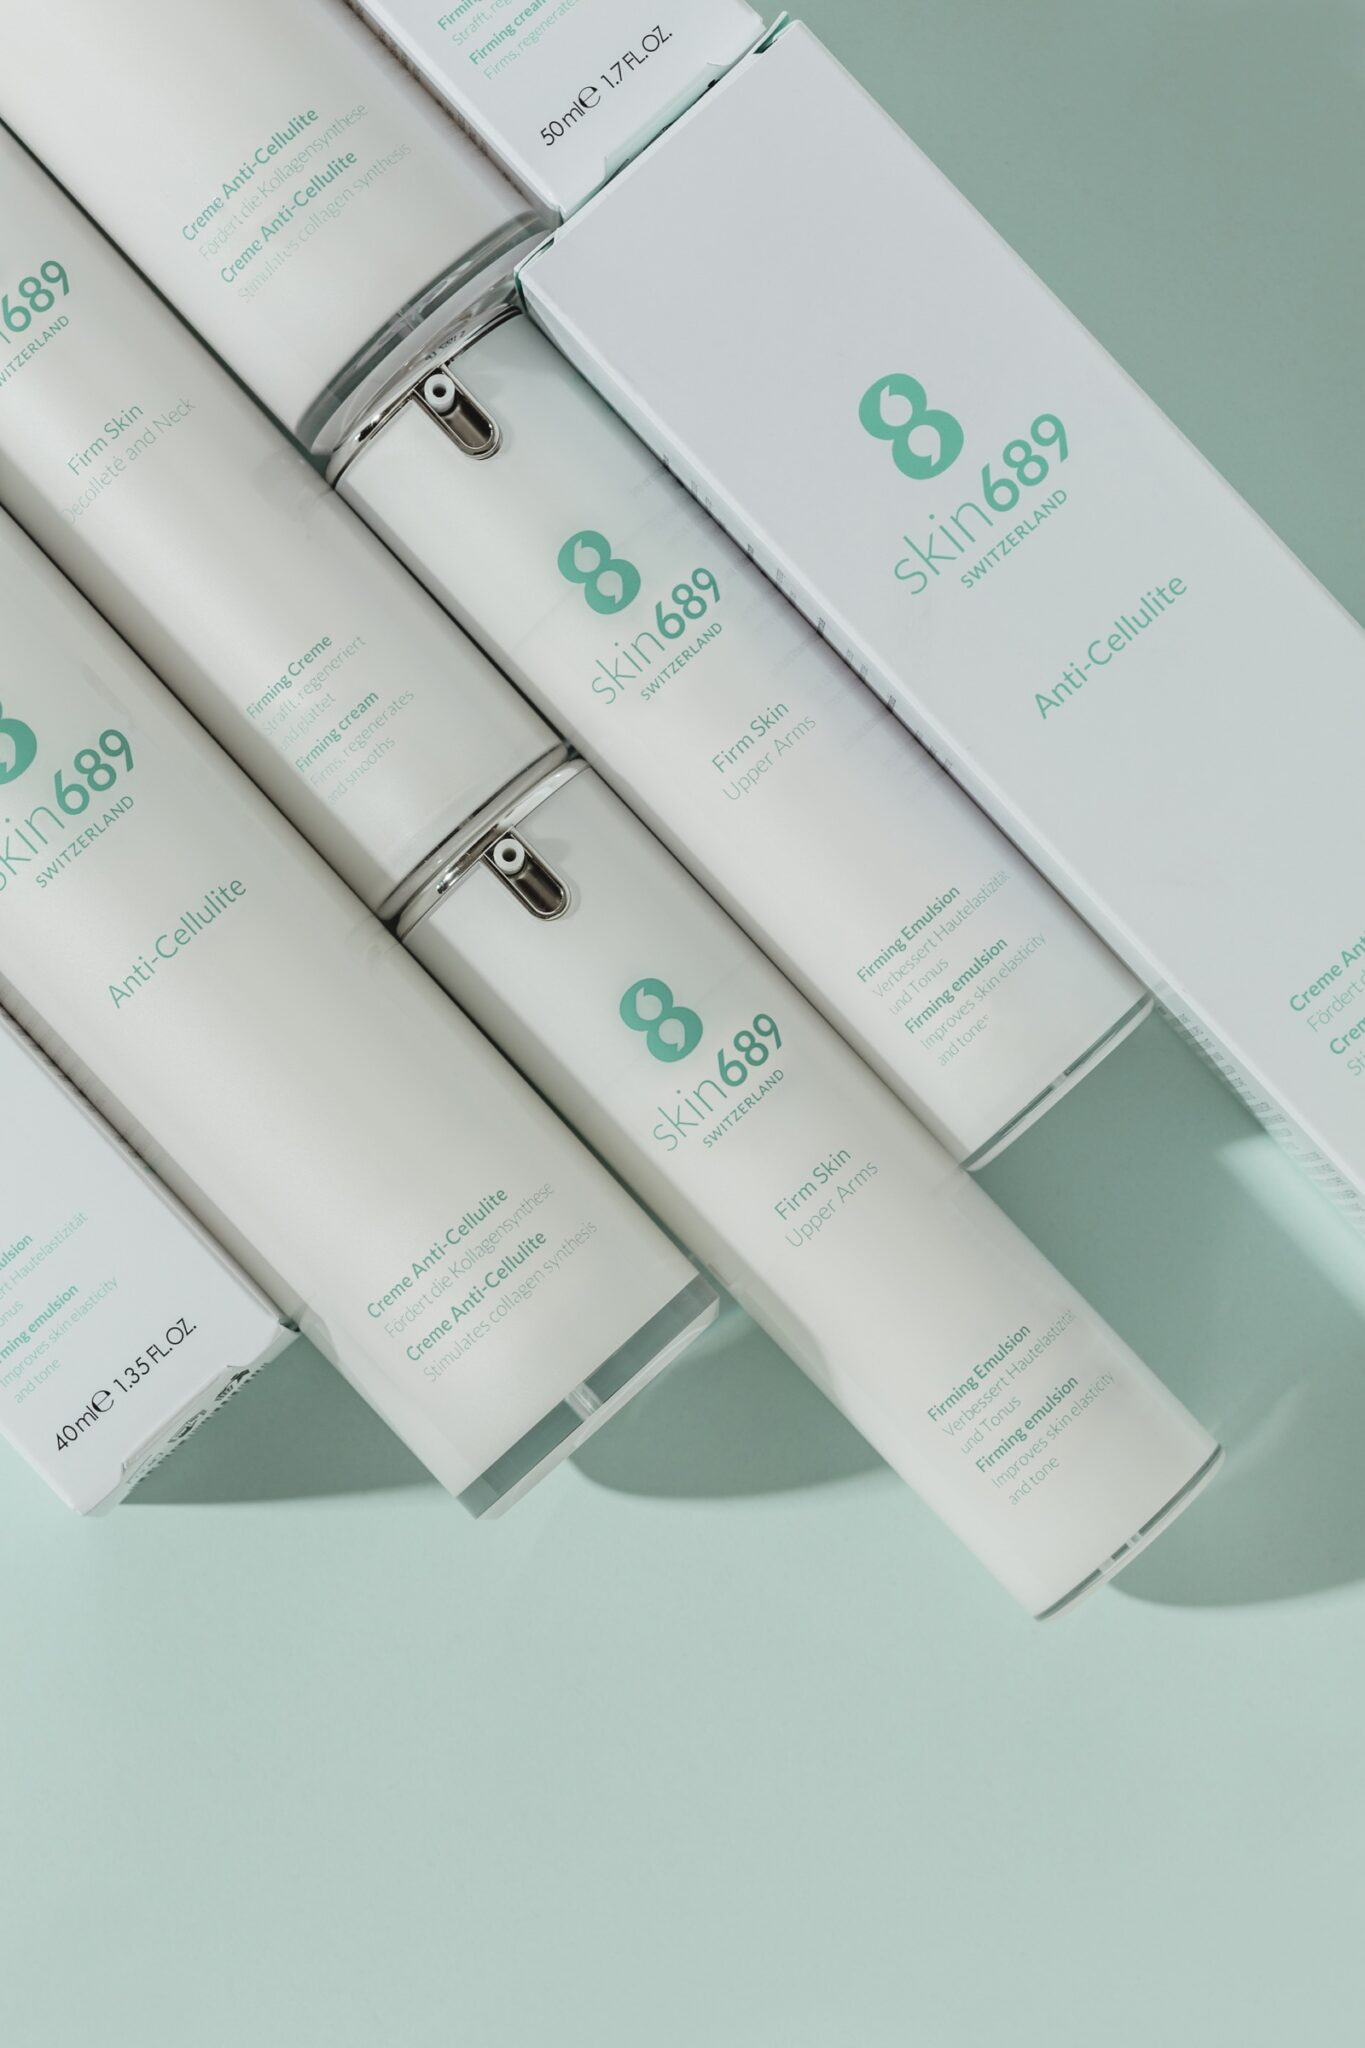 Skin 689: essential beauty for the contemporary gentleman